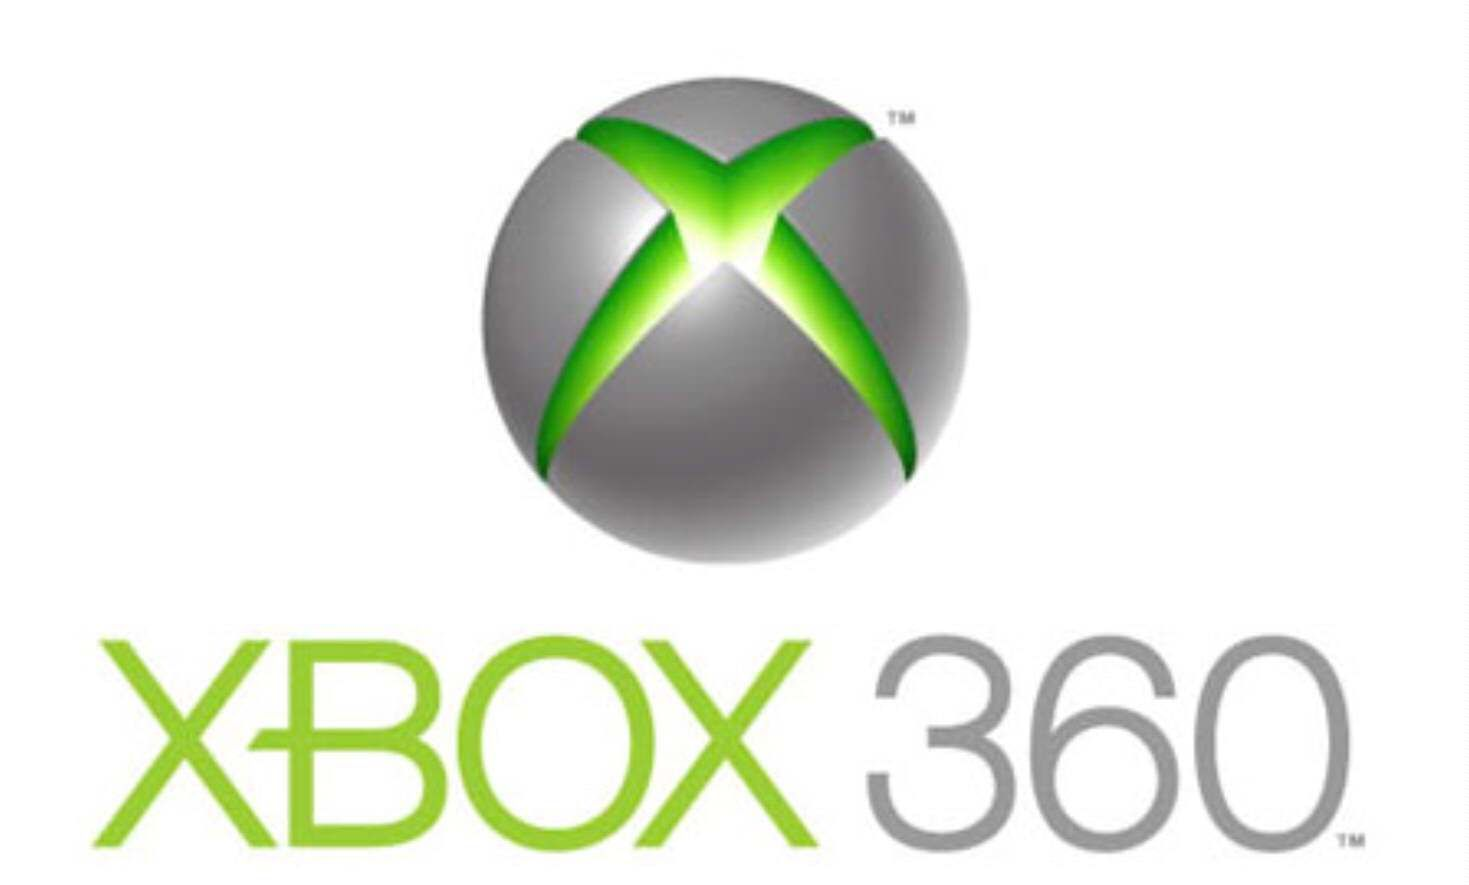 The Xbox 360 Logo Was an